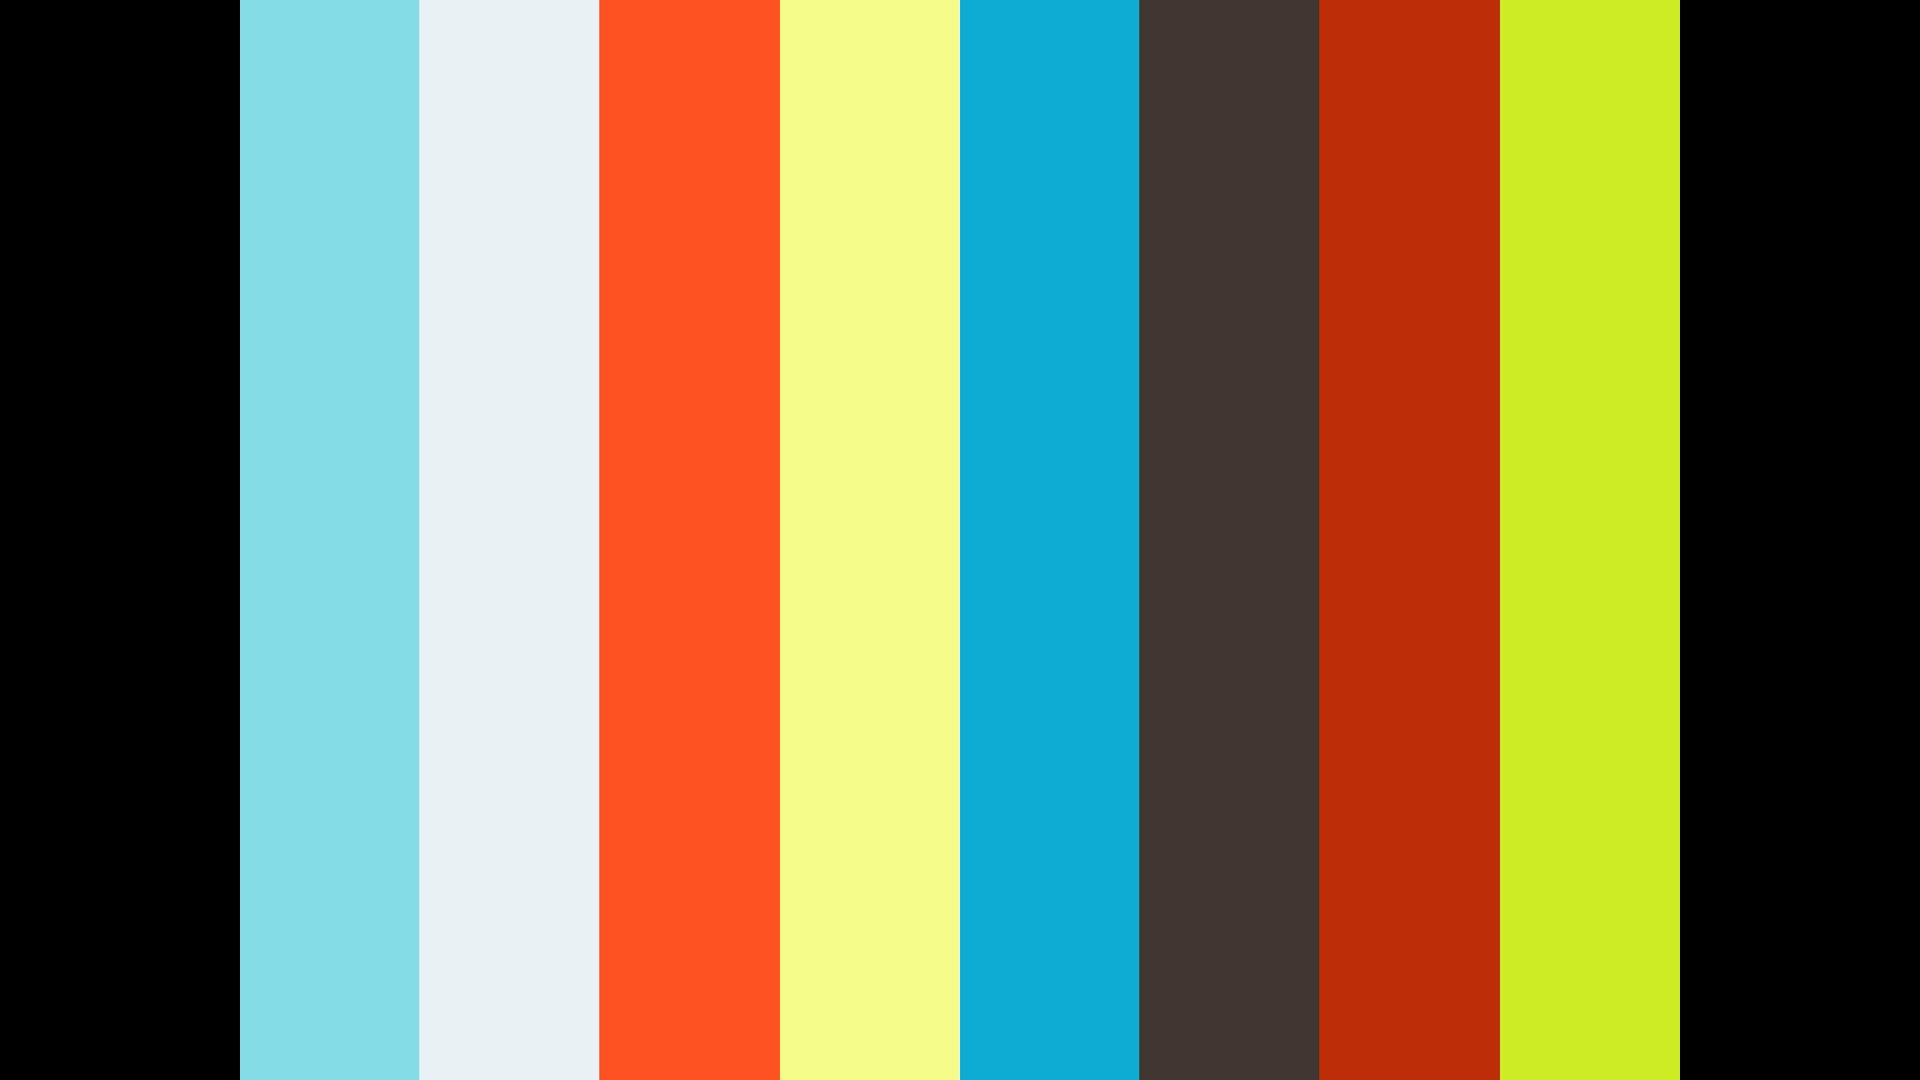 Talk by Alia Mossallam (Panel IV)